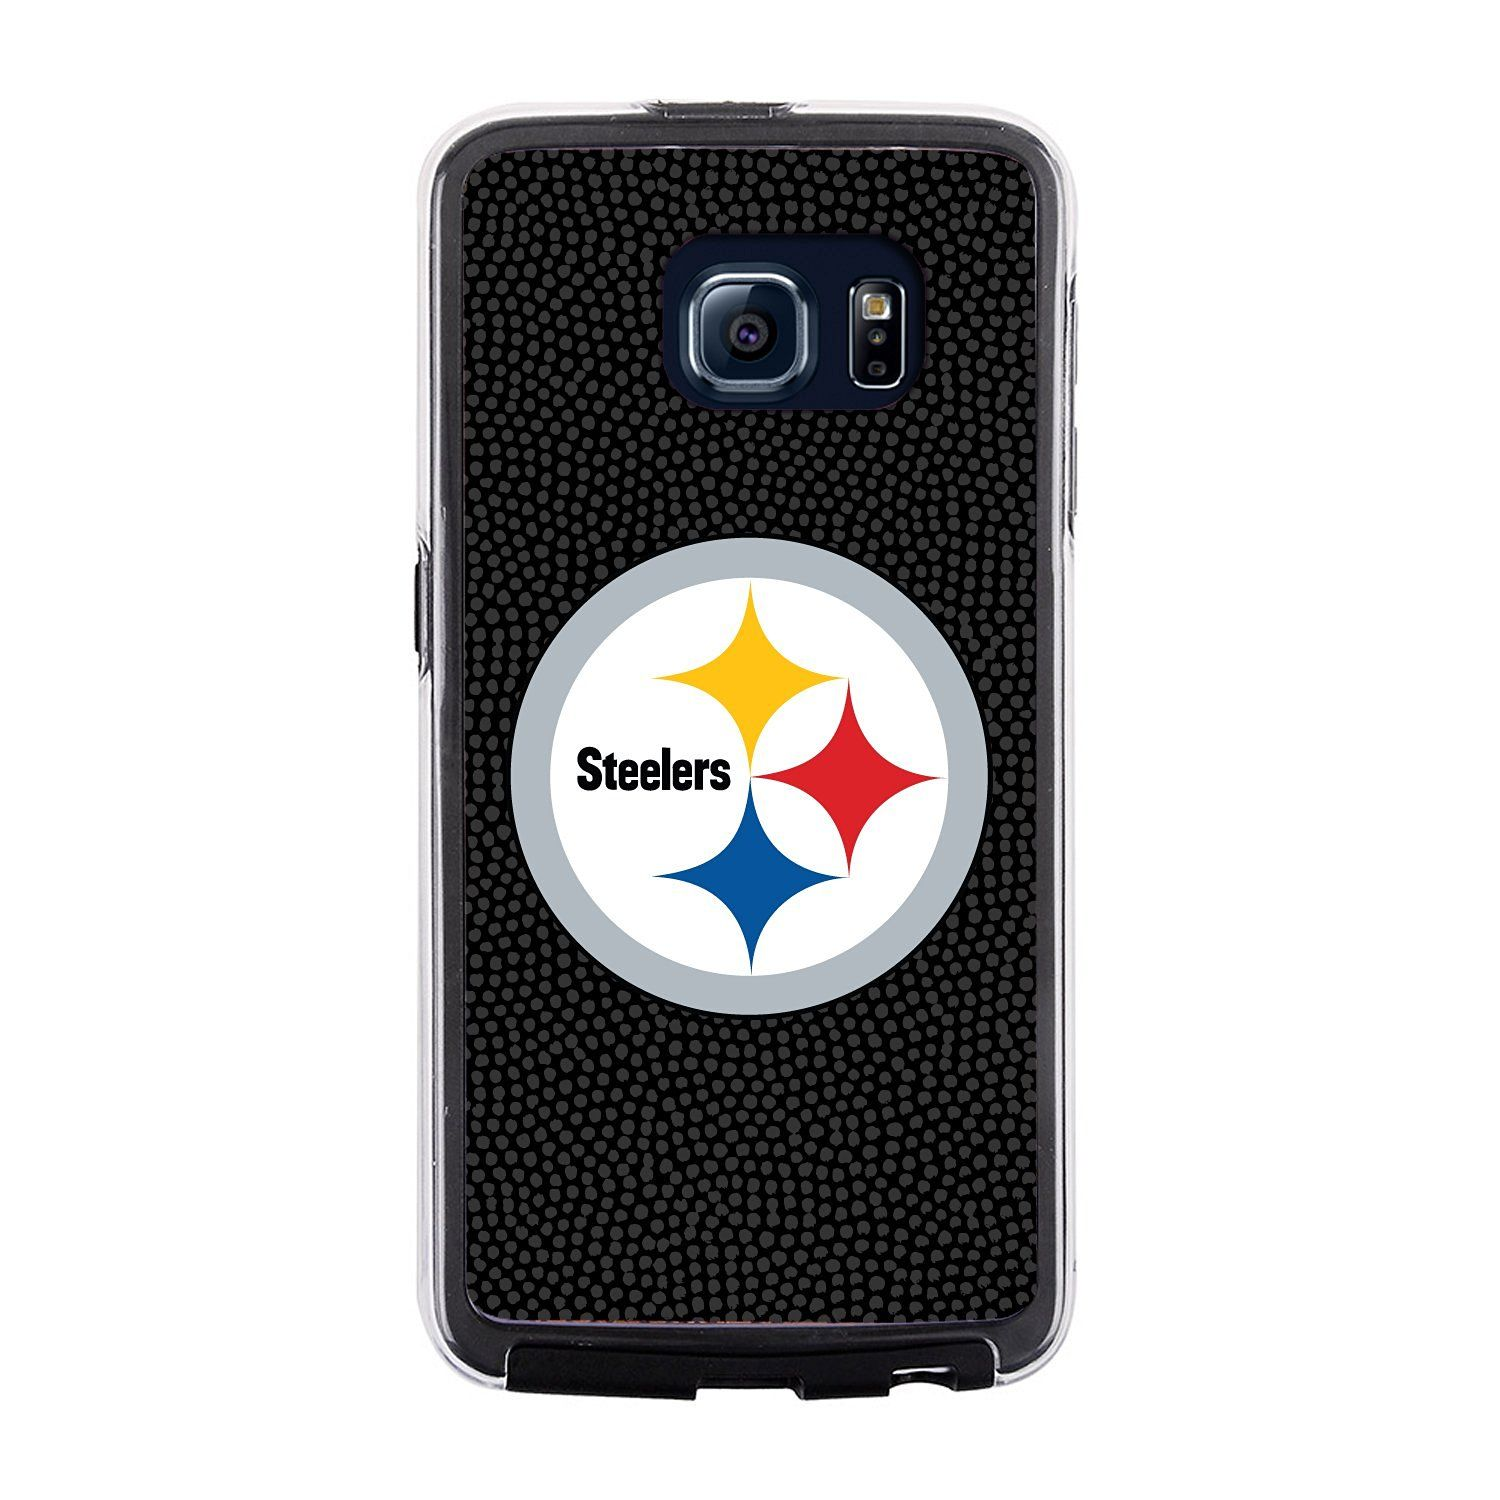 samsung s6 cases football